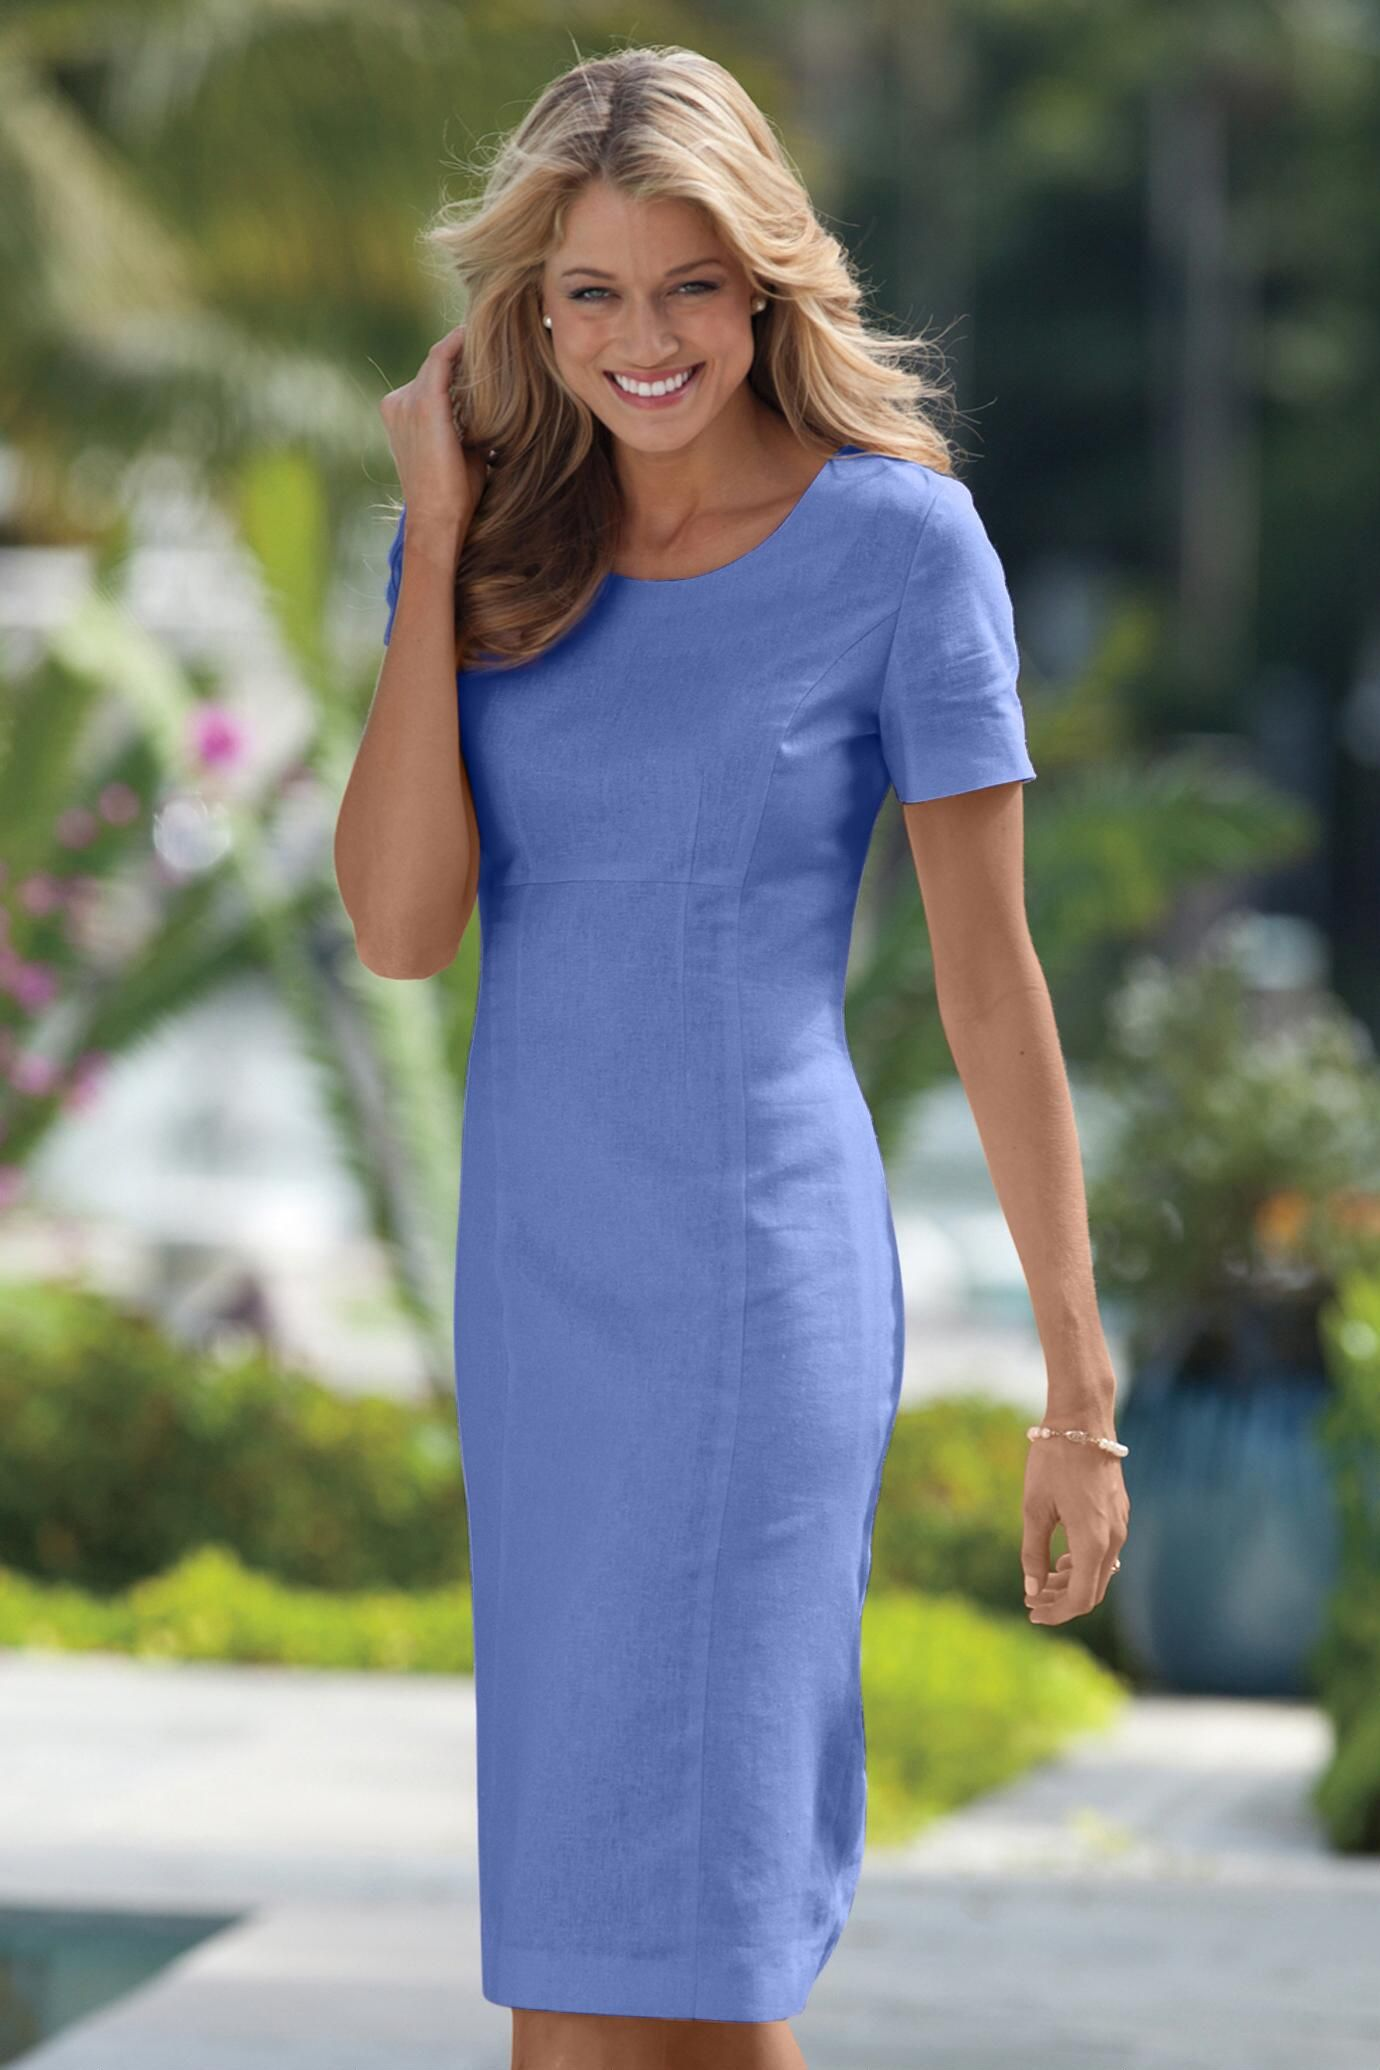 16e9cd76 Perfect Fit Linen Sheath Dress | Made to measure | Linen dresses ...